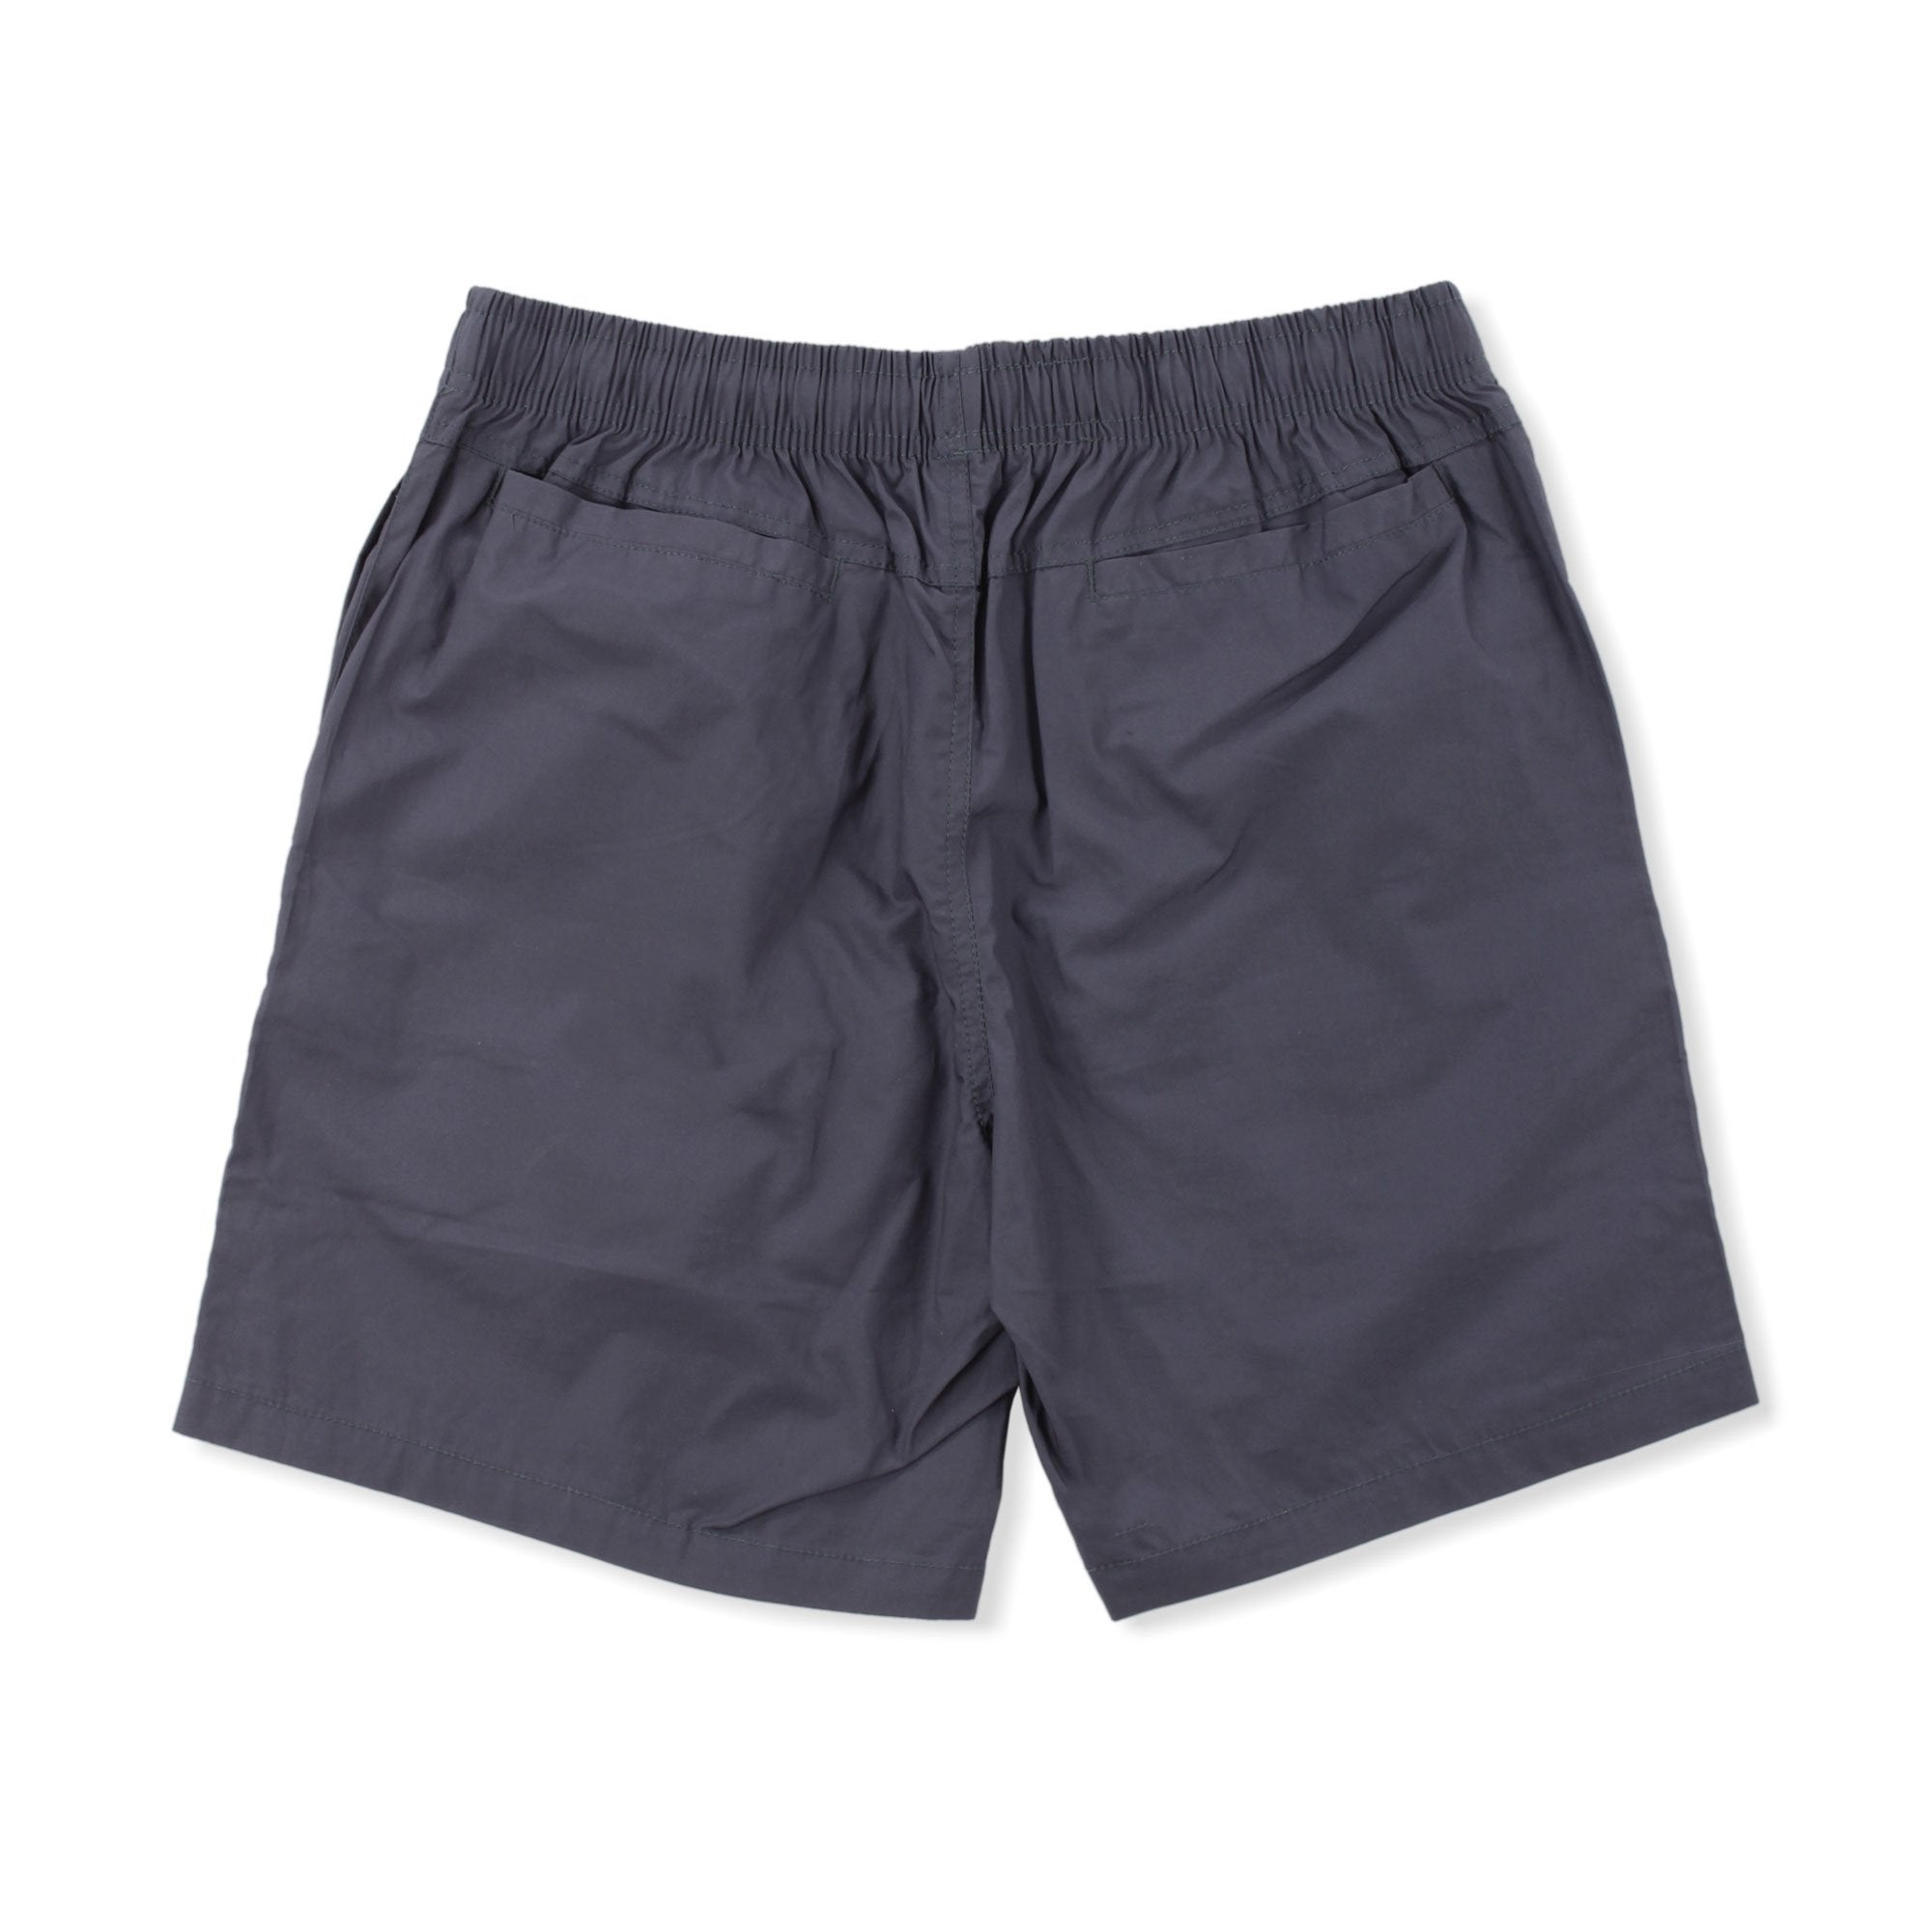 Beyond Patchemanjaro Shorts Product Photo #2